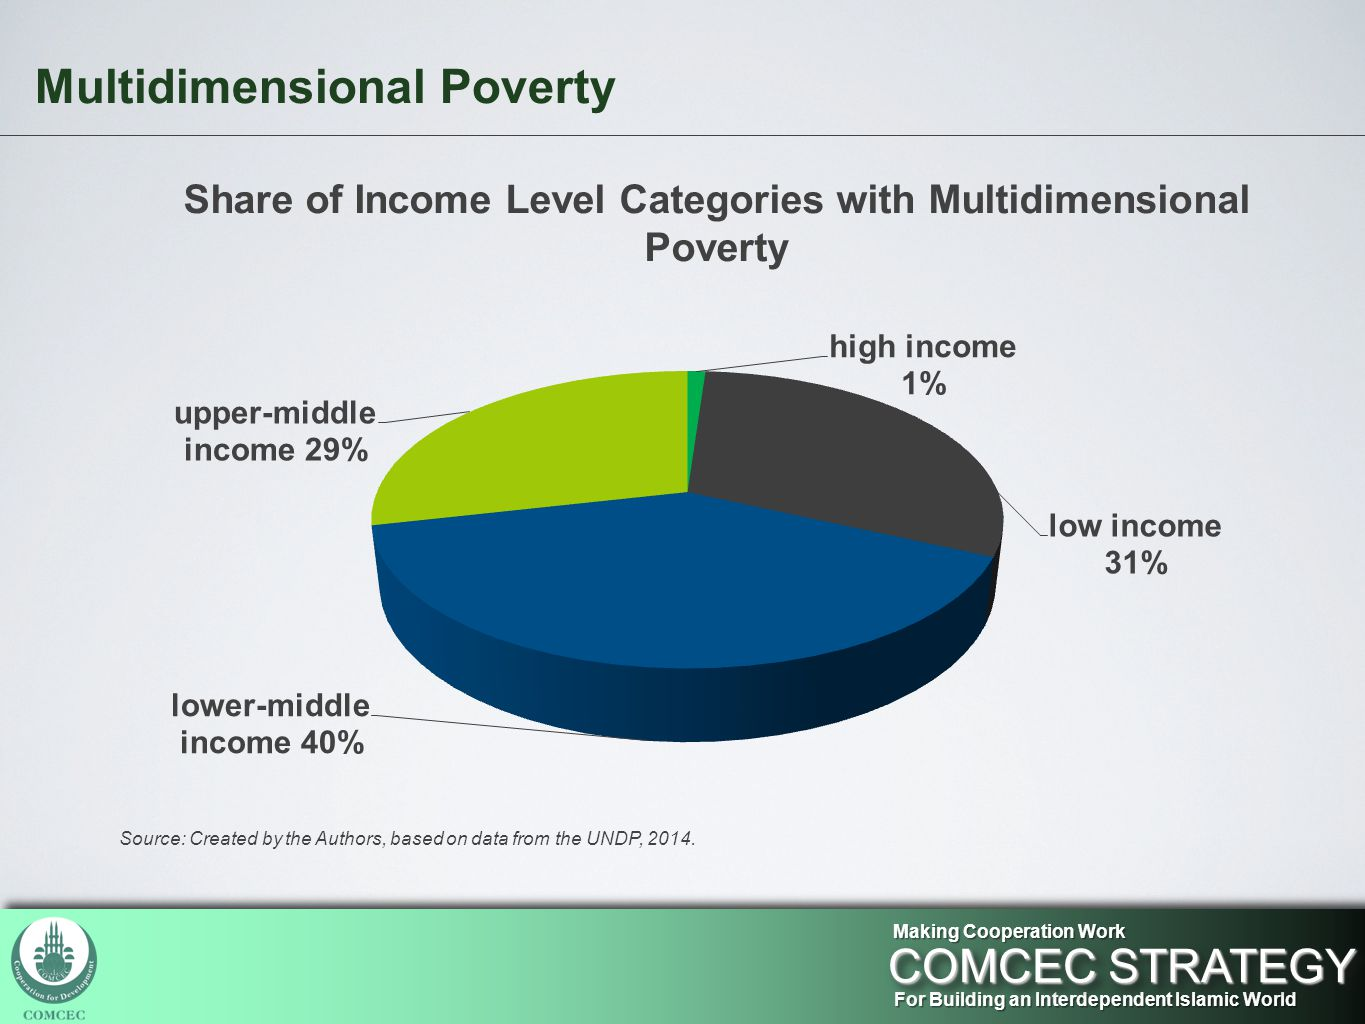 Multidimensional Poverty For Building an Interdependent Islamic World COMCEC STRATEGY Making Cooperation Work Share of Income Level Categories with Multidimensional Poverty Source: Created by the Authors, based on data from the UNDP, 2014.